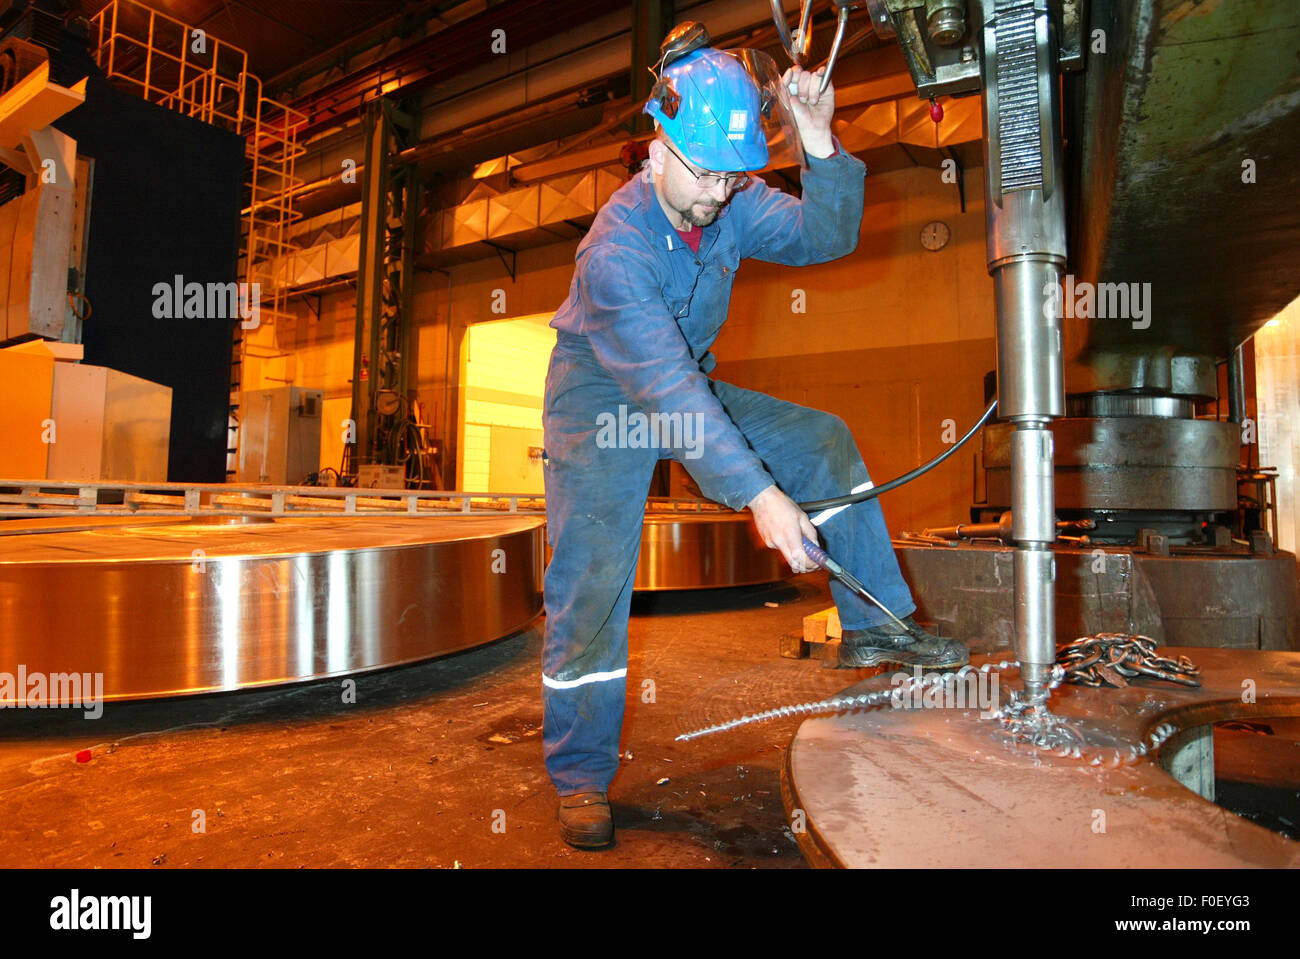 Winch production for offshore drilling oil rigs at I P Huse on the Island of Herøya, West Coast of Norway, - Stock Image